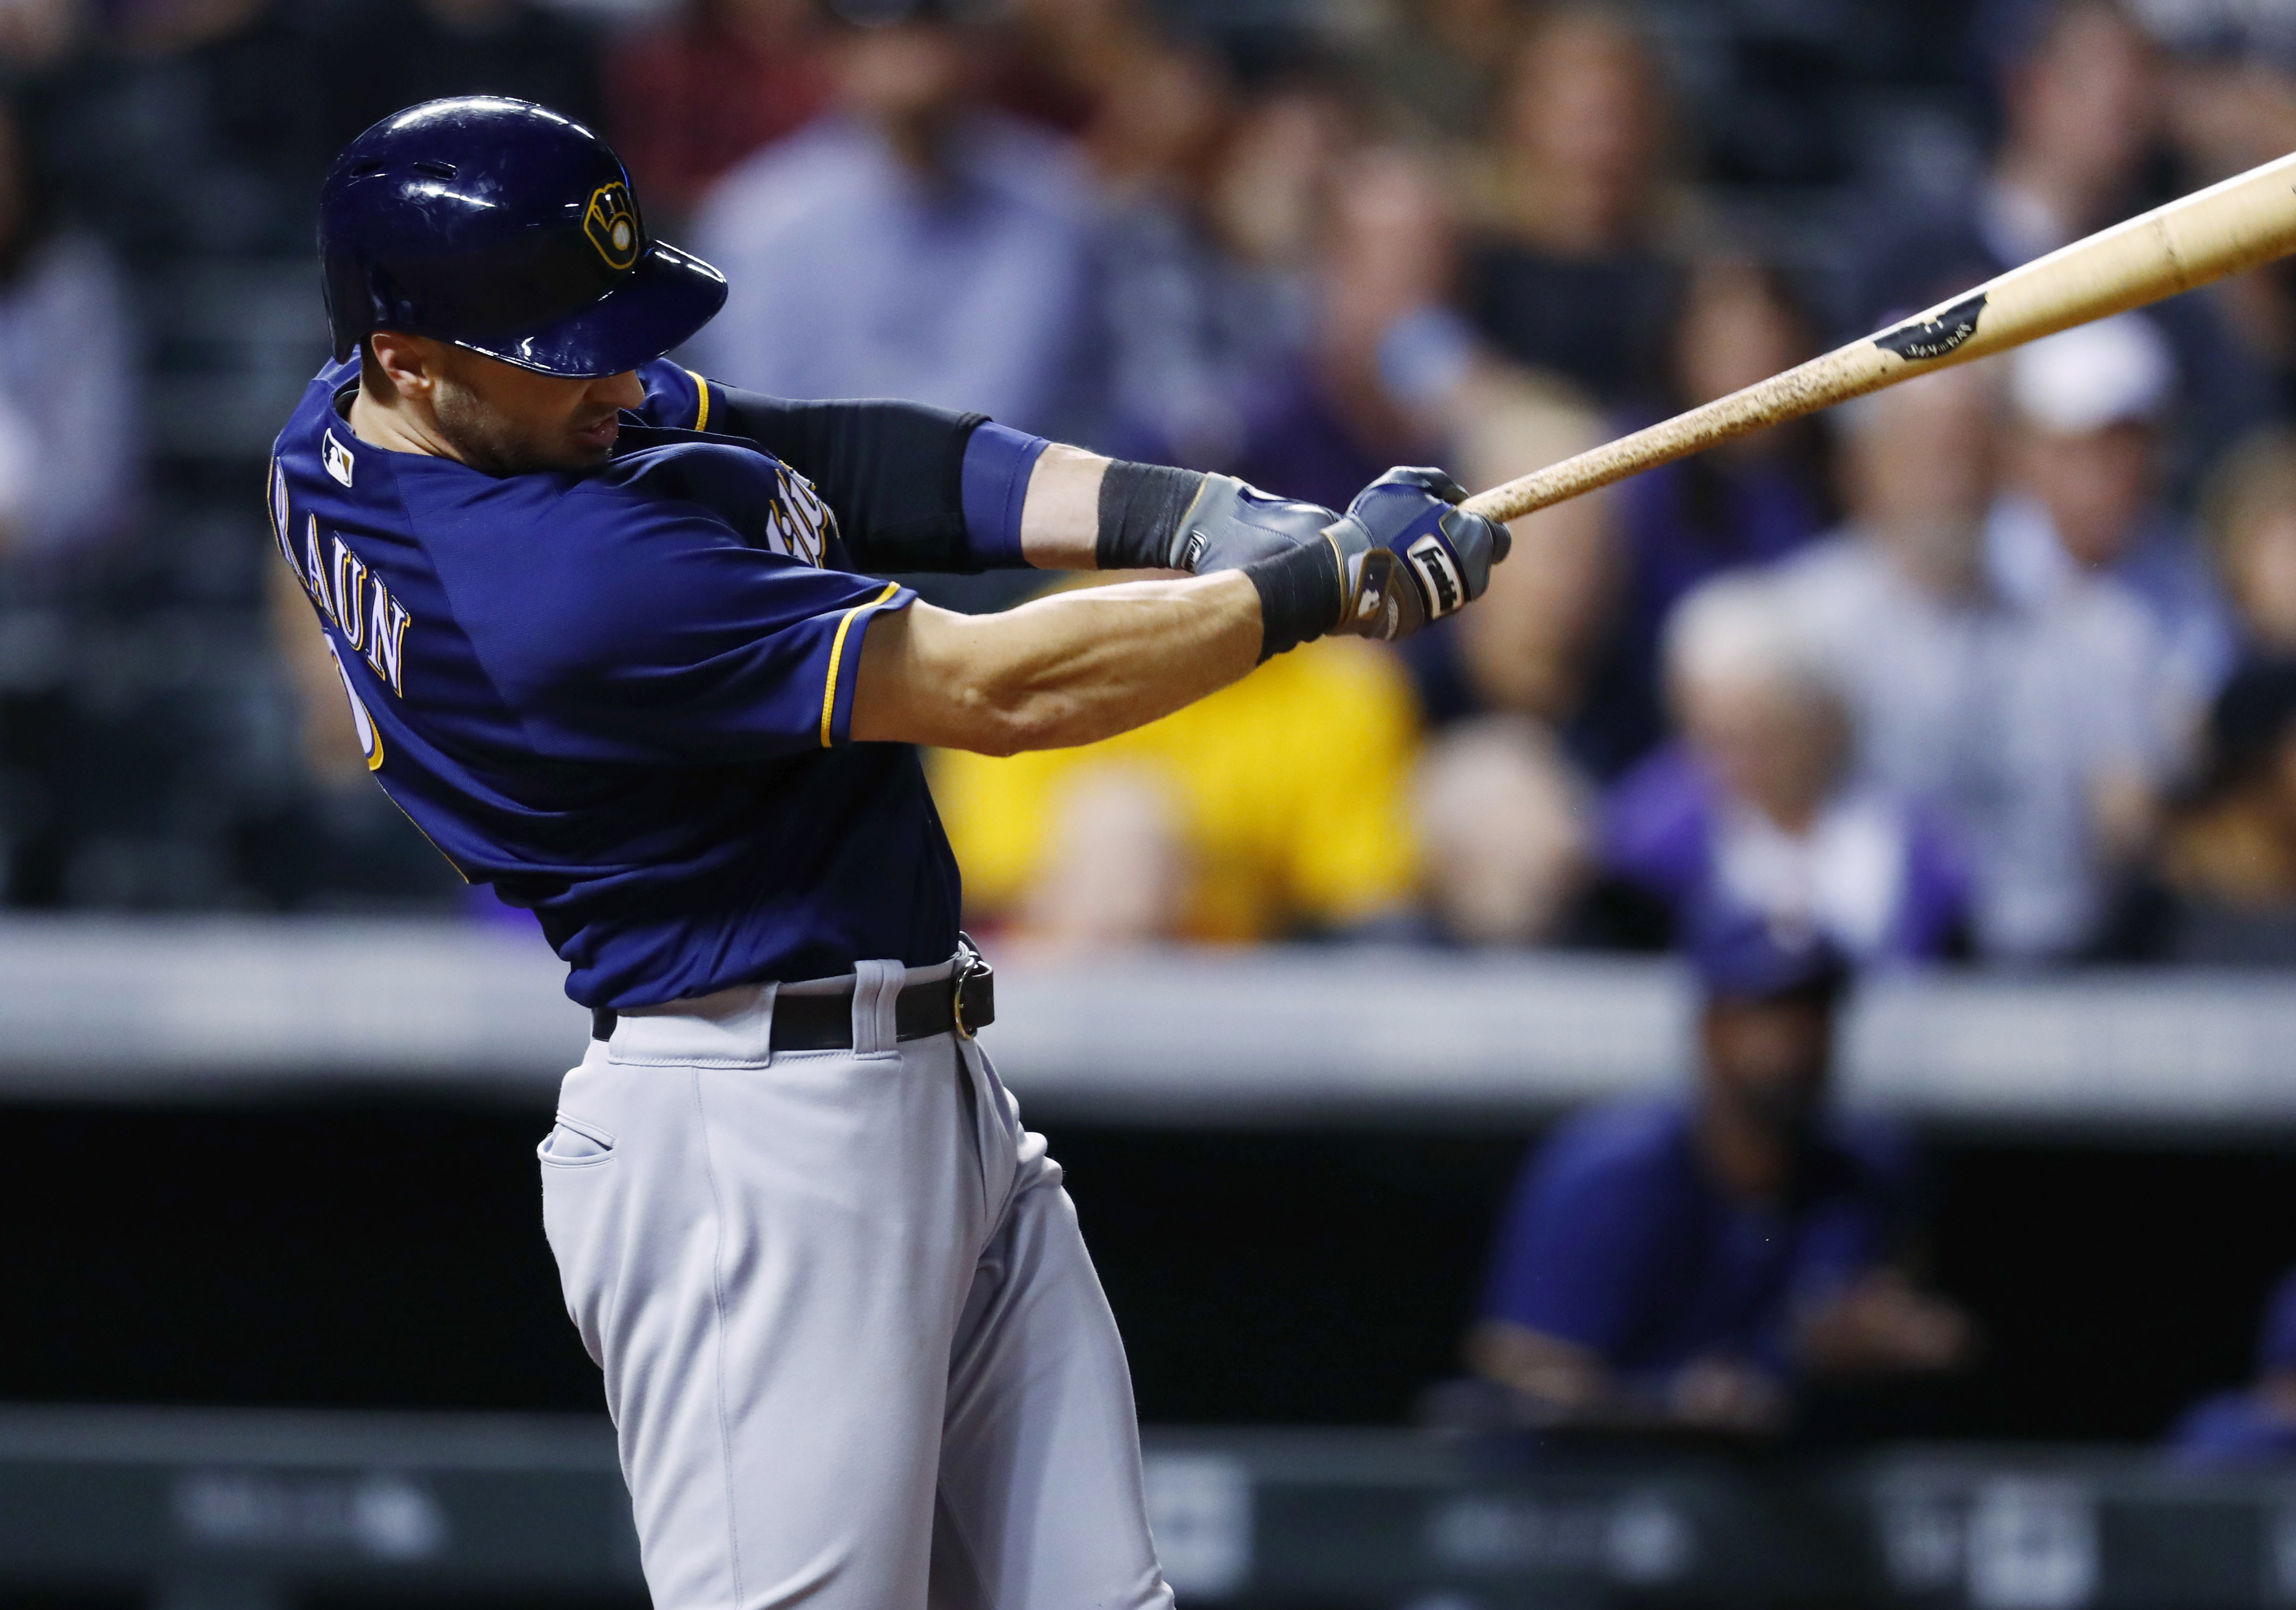 Milwaukee Brewers' Ryan Braun follows through on an RBI double off Colorado Rockies relief pitcher Jordan Lyles during the eighth inning of a baseball game Saturday, Oct. 1, 2016, in Denver. Milwaukee won 4-3 in 10 innings. (AP Photo/David Zalubowski)